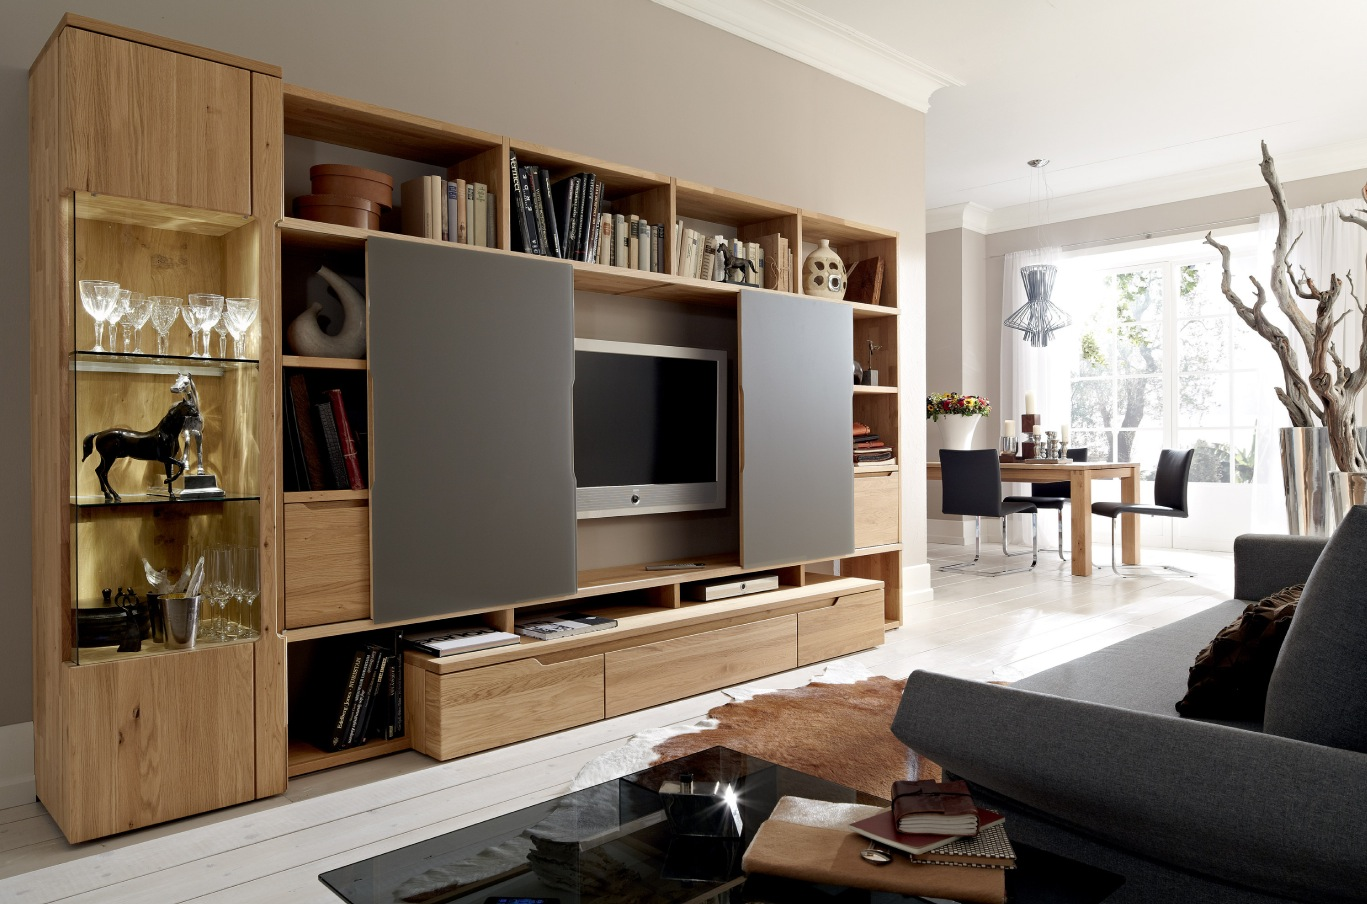 Large Custom Fireplace Screens With Doors For Living Room Wooden Finish Wall Unit Combinations From Hülsta